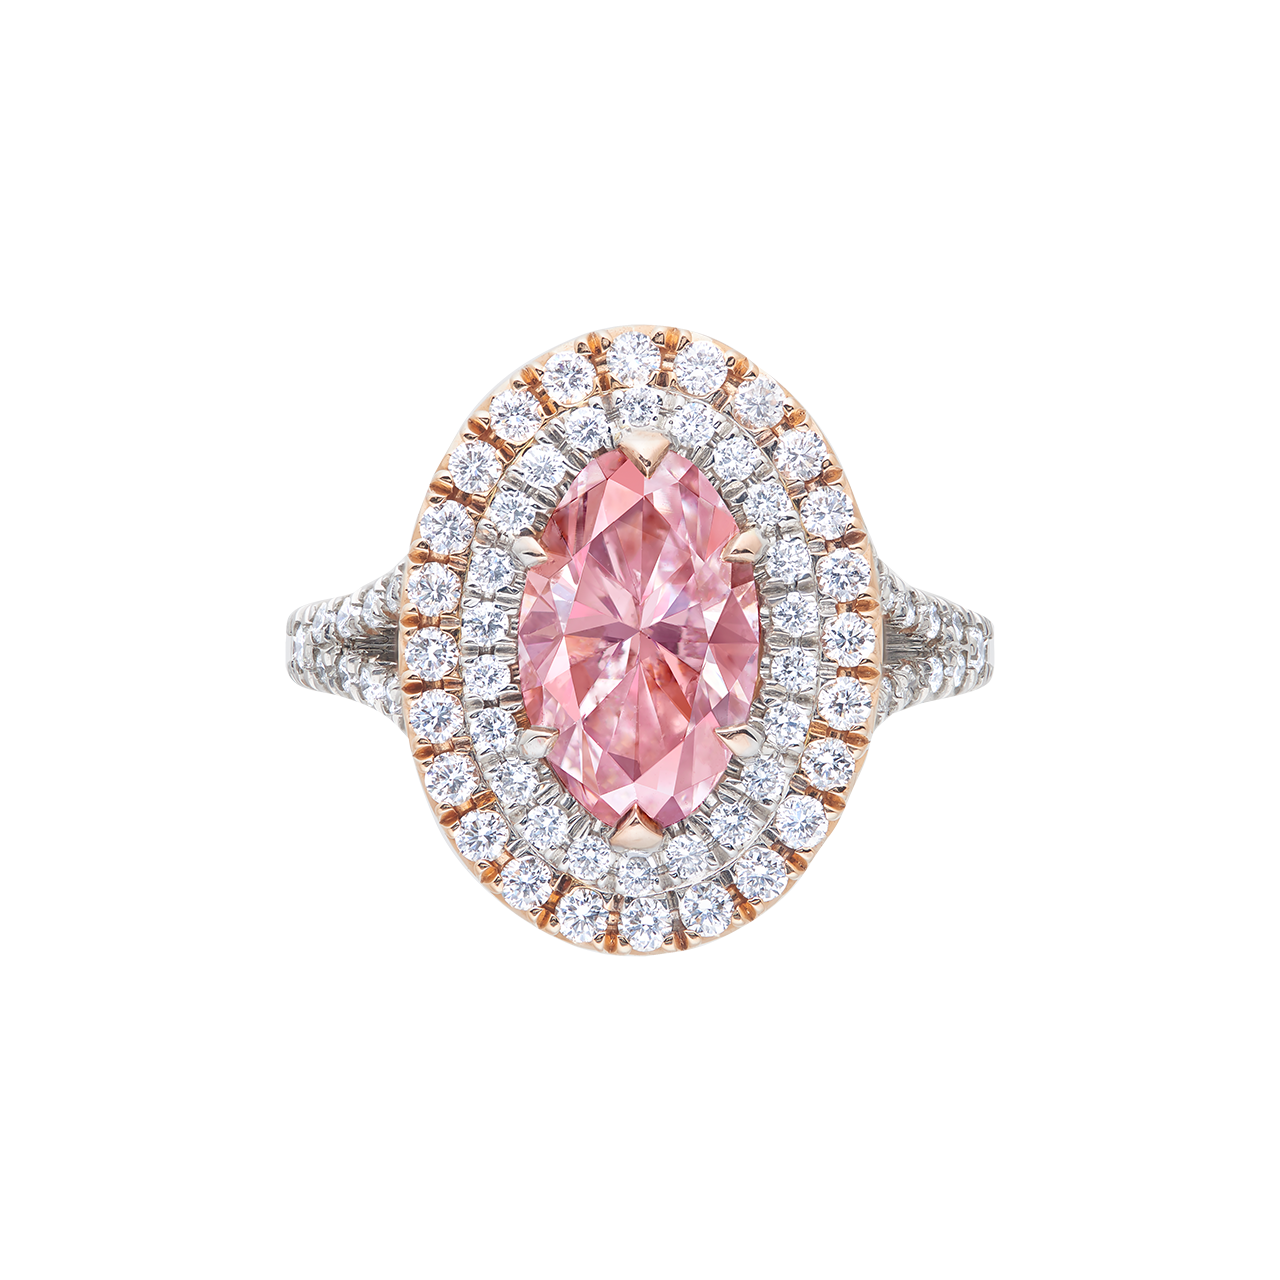 GIA 粉鑽鑽石戒 1.72 克拉